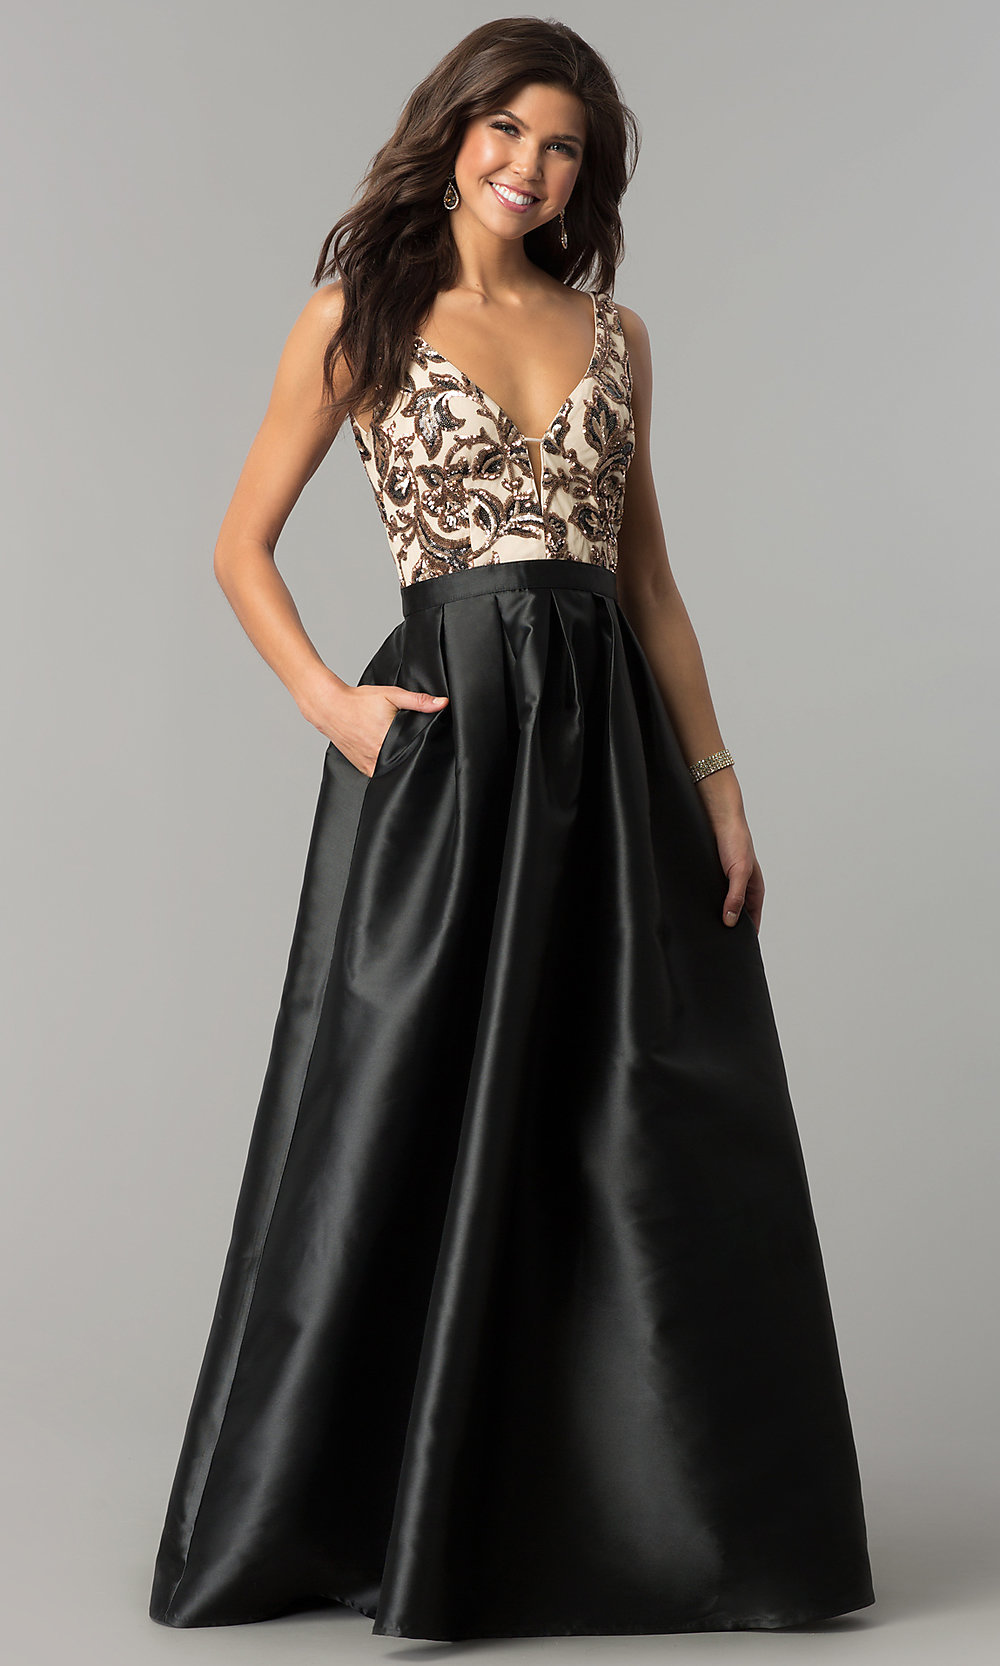 Long Pocketed Satin Prom Dress With Sequins - PromGirl